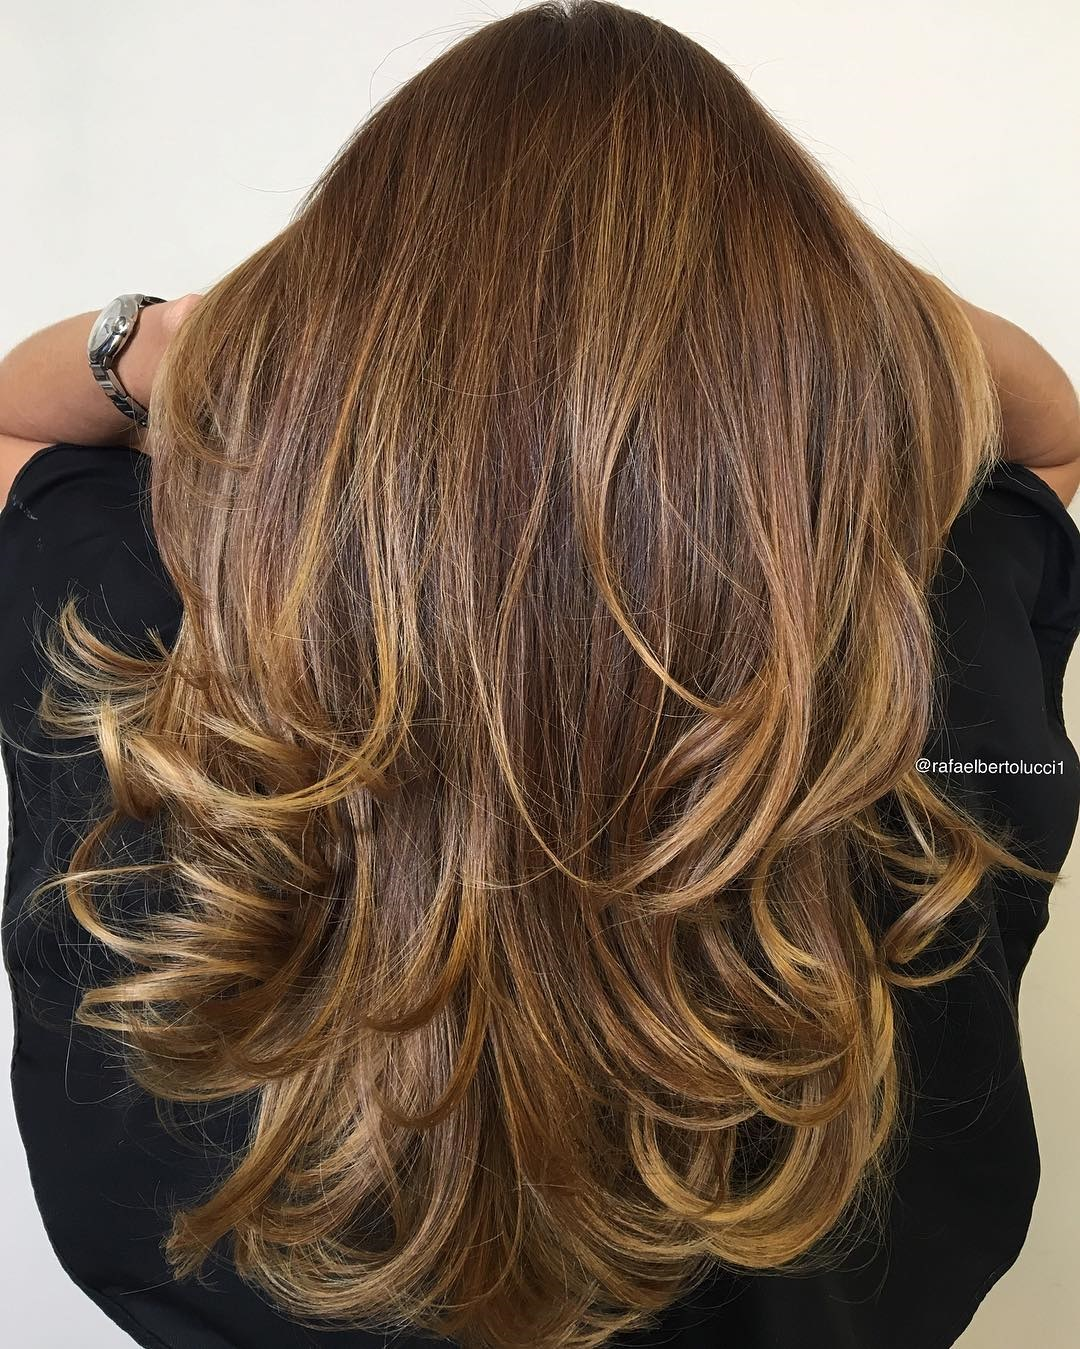 20 Best Golden Brown Hair Ideas to Choose From